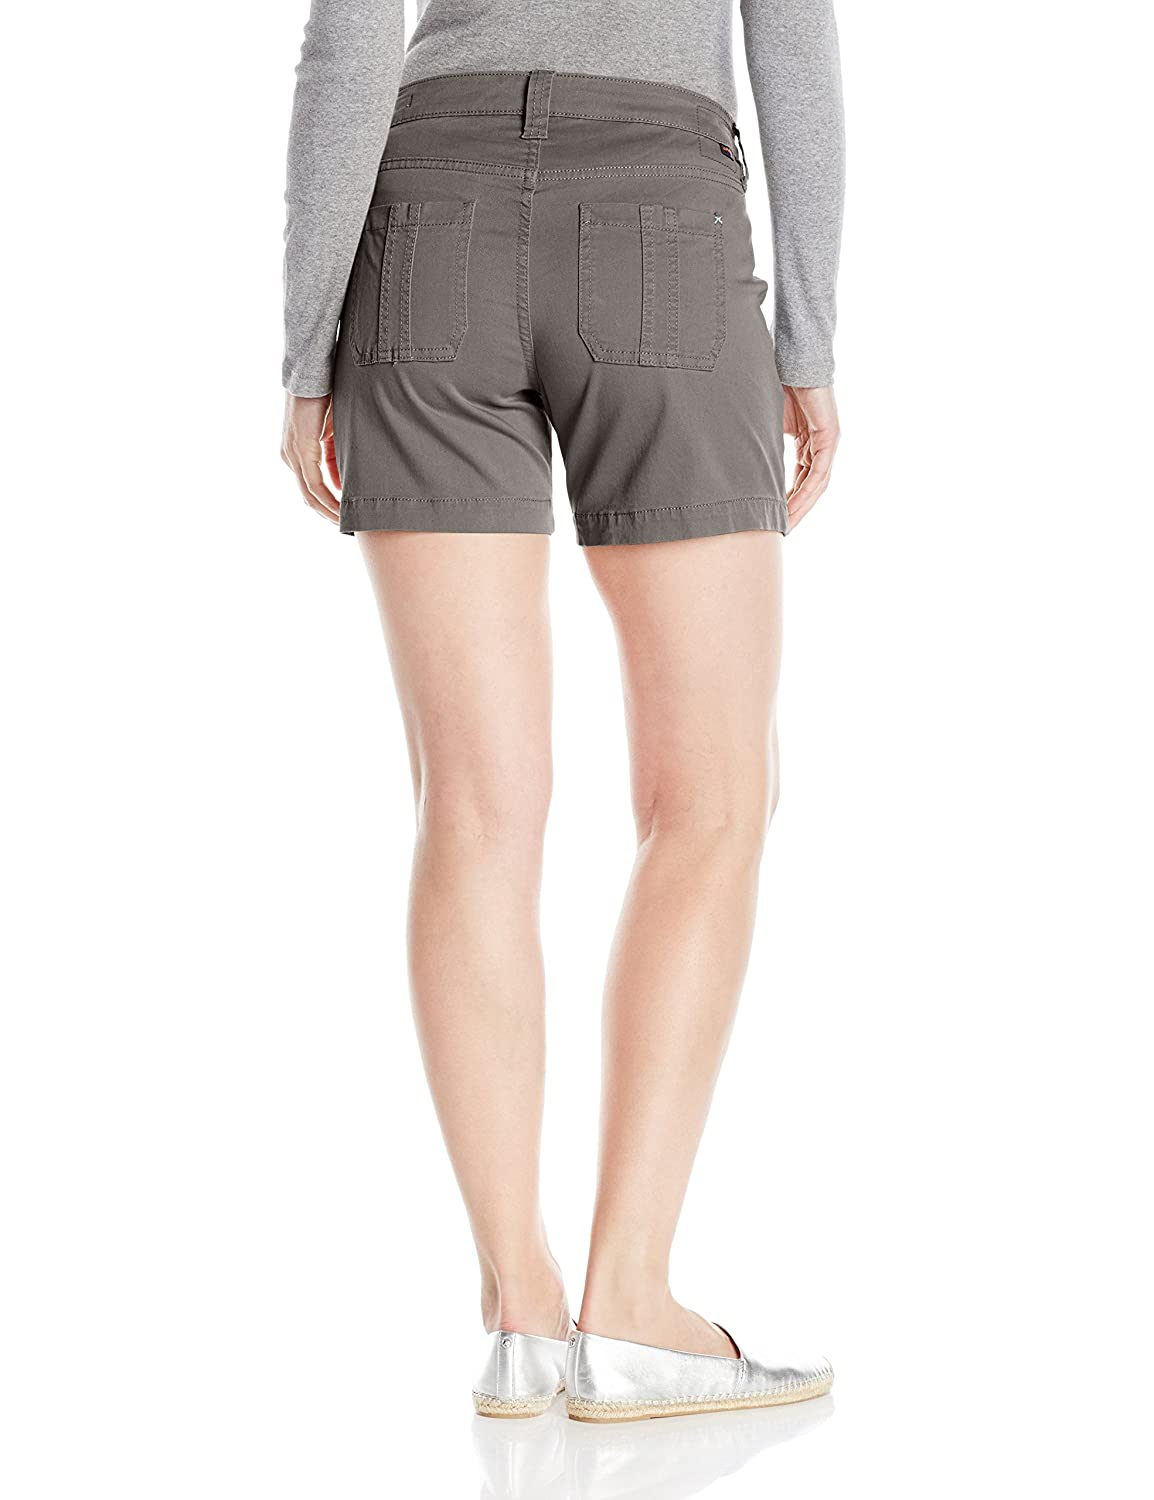 Jag Jeans Womens Somerset Short in Bay Twill Jag Jeans Women/'s Collection J2361331